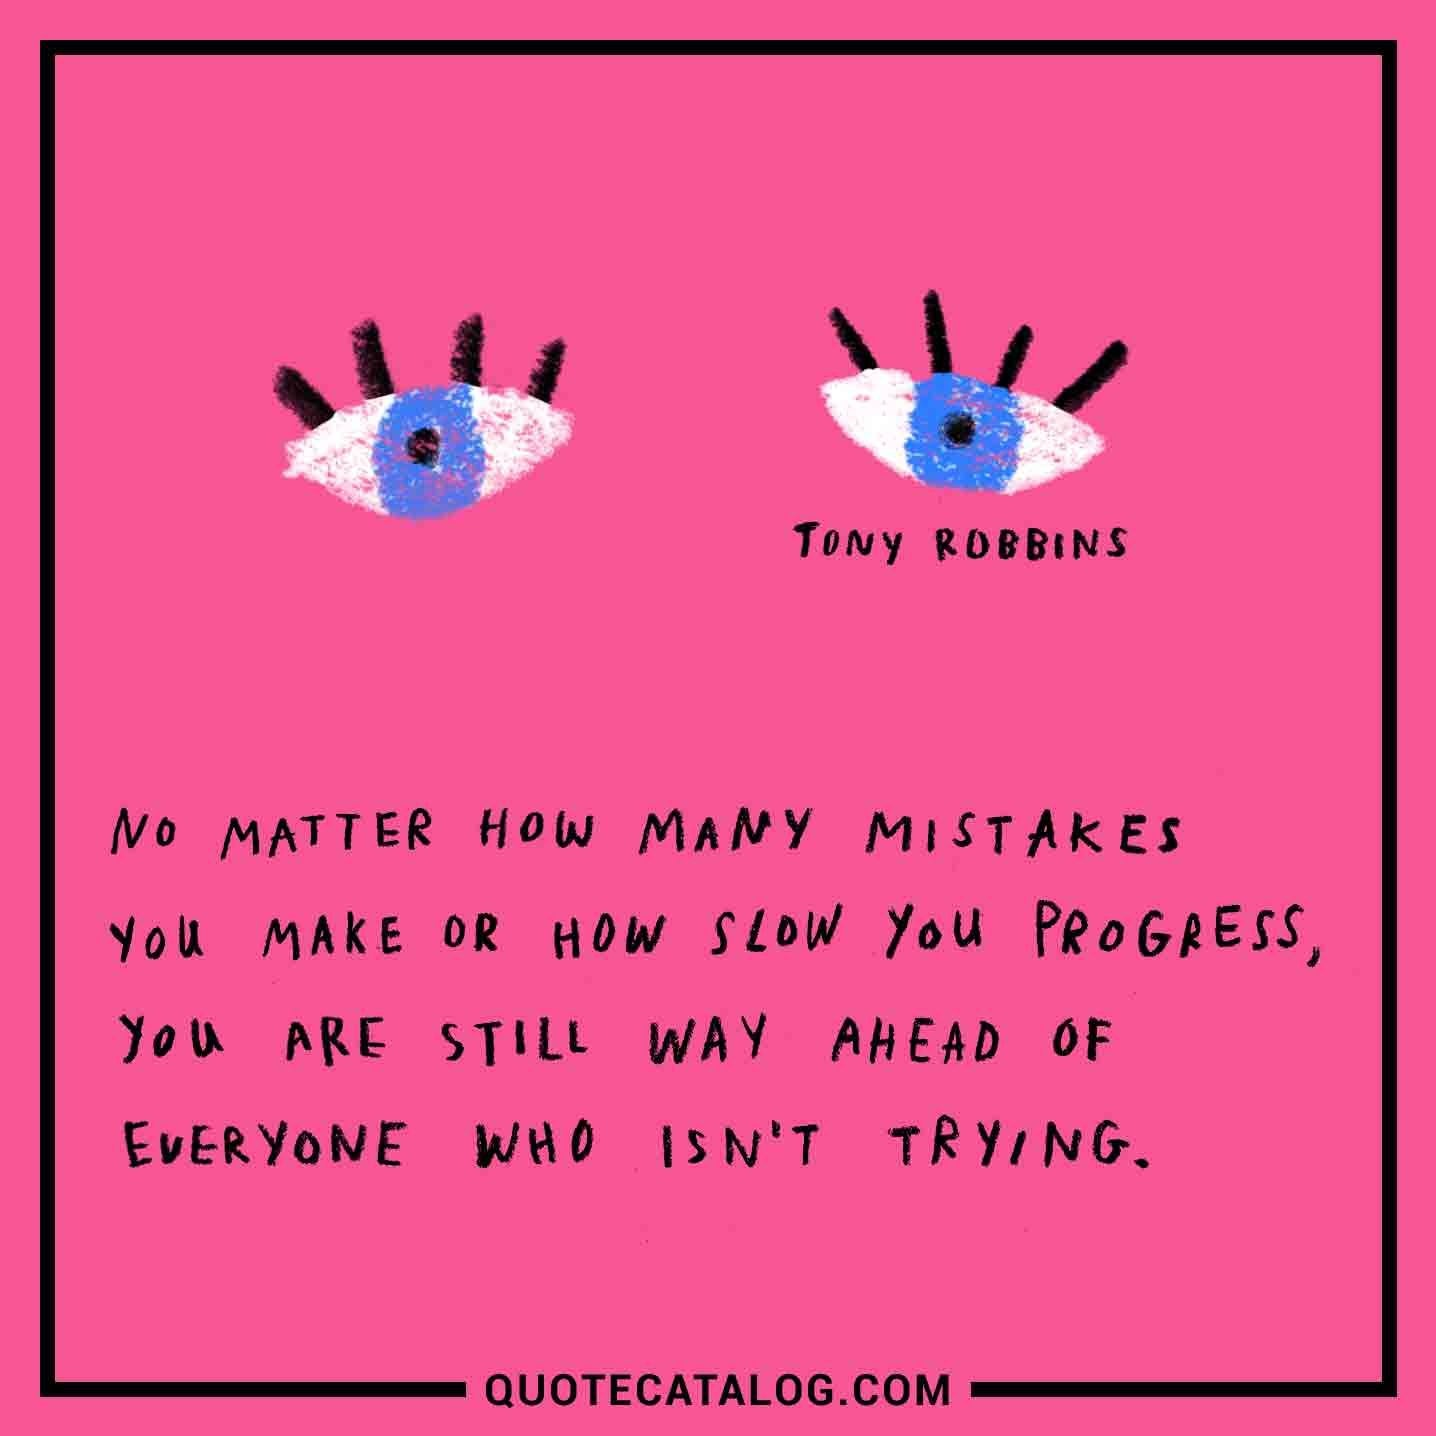 No Matter How Many Mistakes You Make Or How Slow You Progress, You Are Still